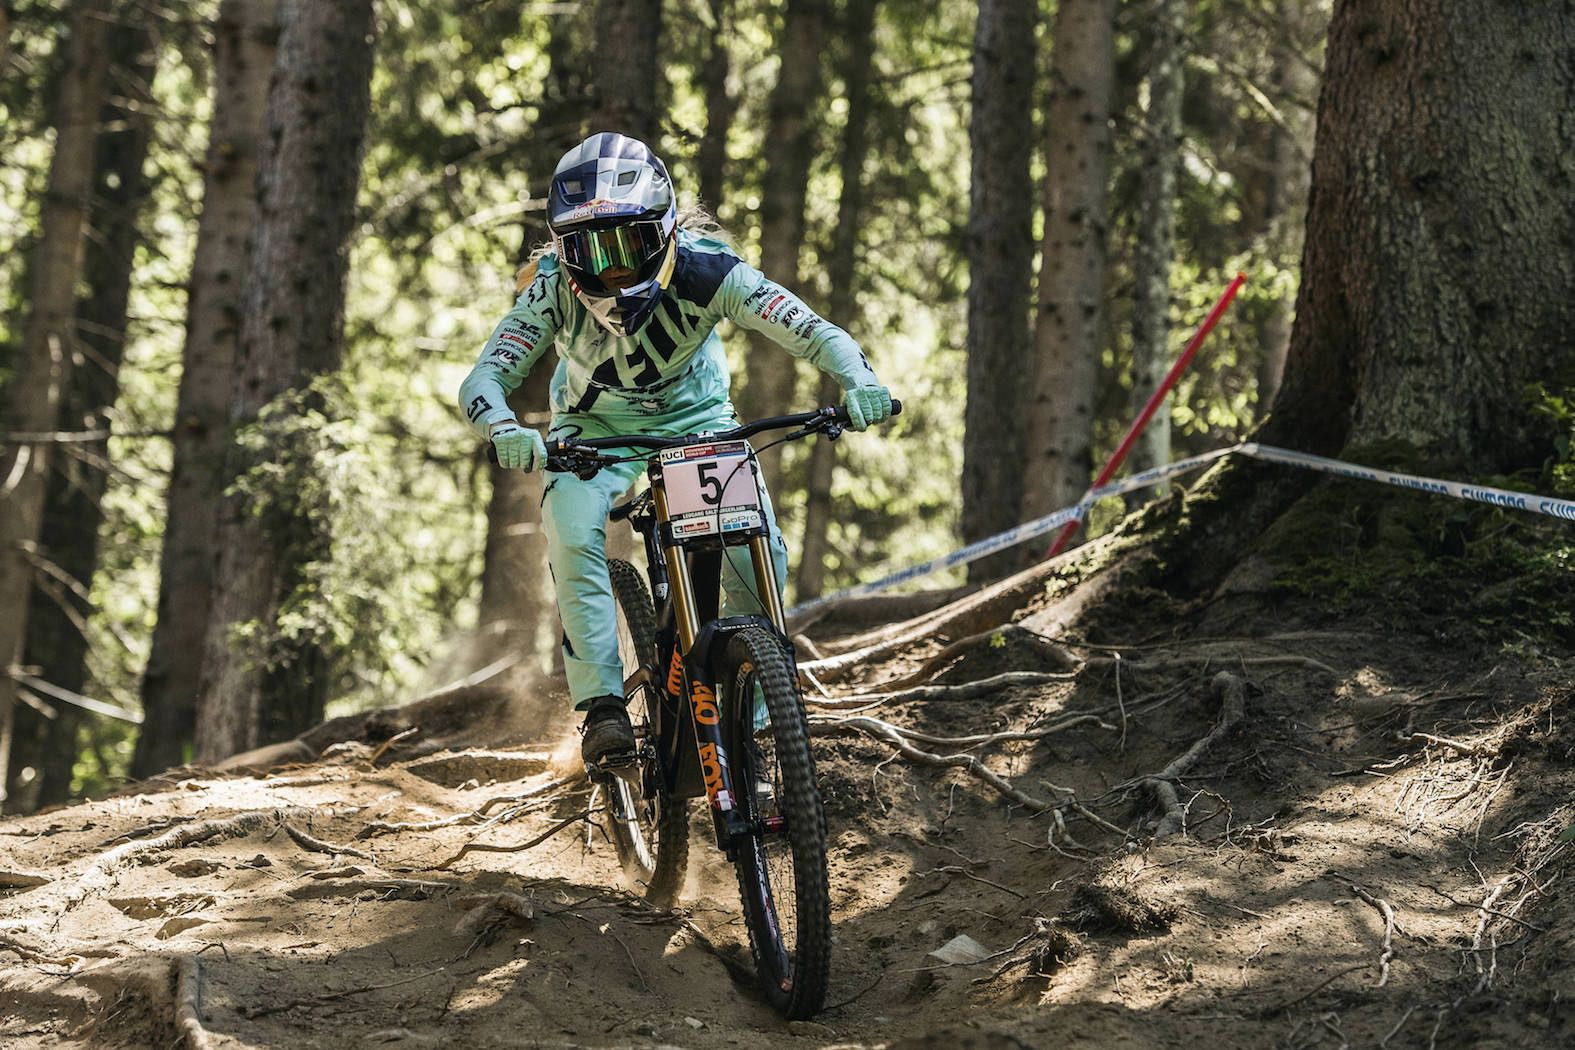 Tahnee Seagrave places 1st at the 2017 Leagang UCI Downhill MTB World Cup